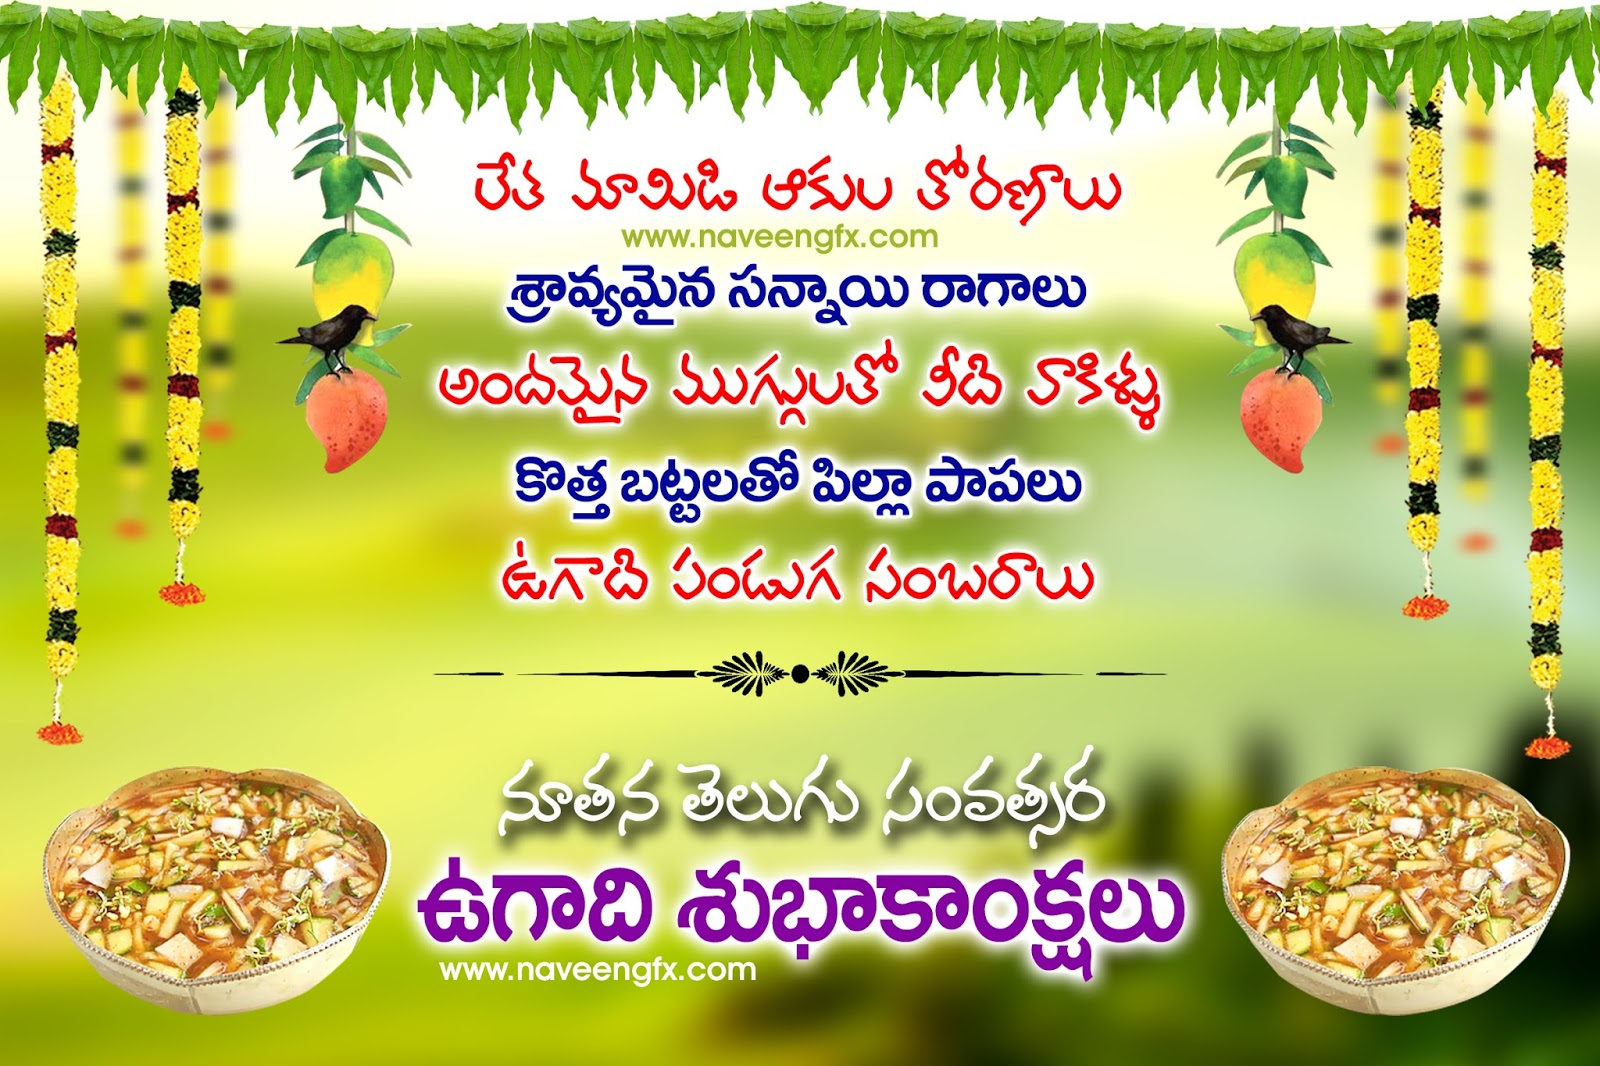 Happy Ugadi 2017 Telugu Quotes And Posters Hd Images Gfx All Free